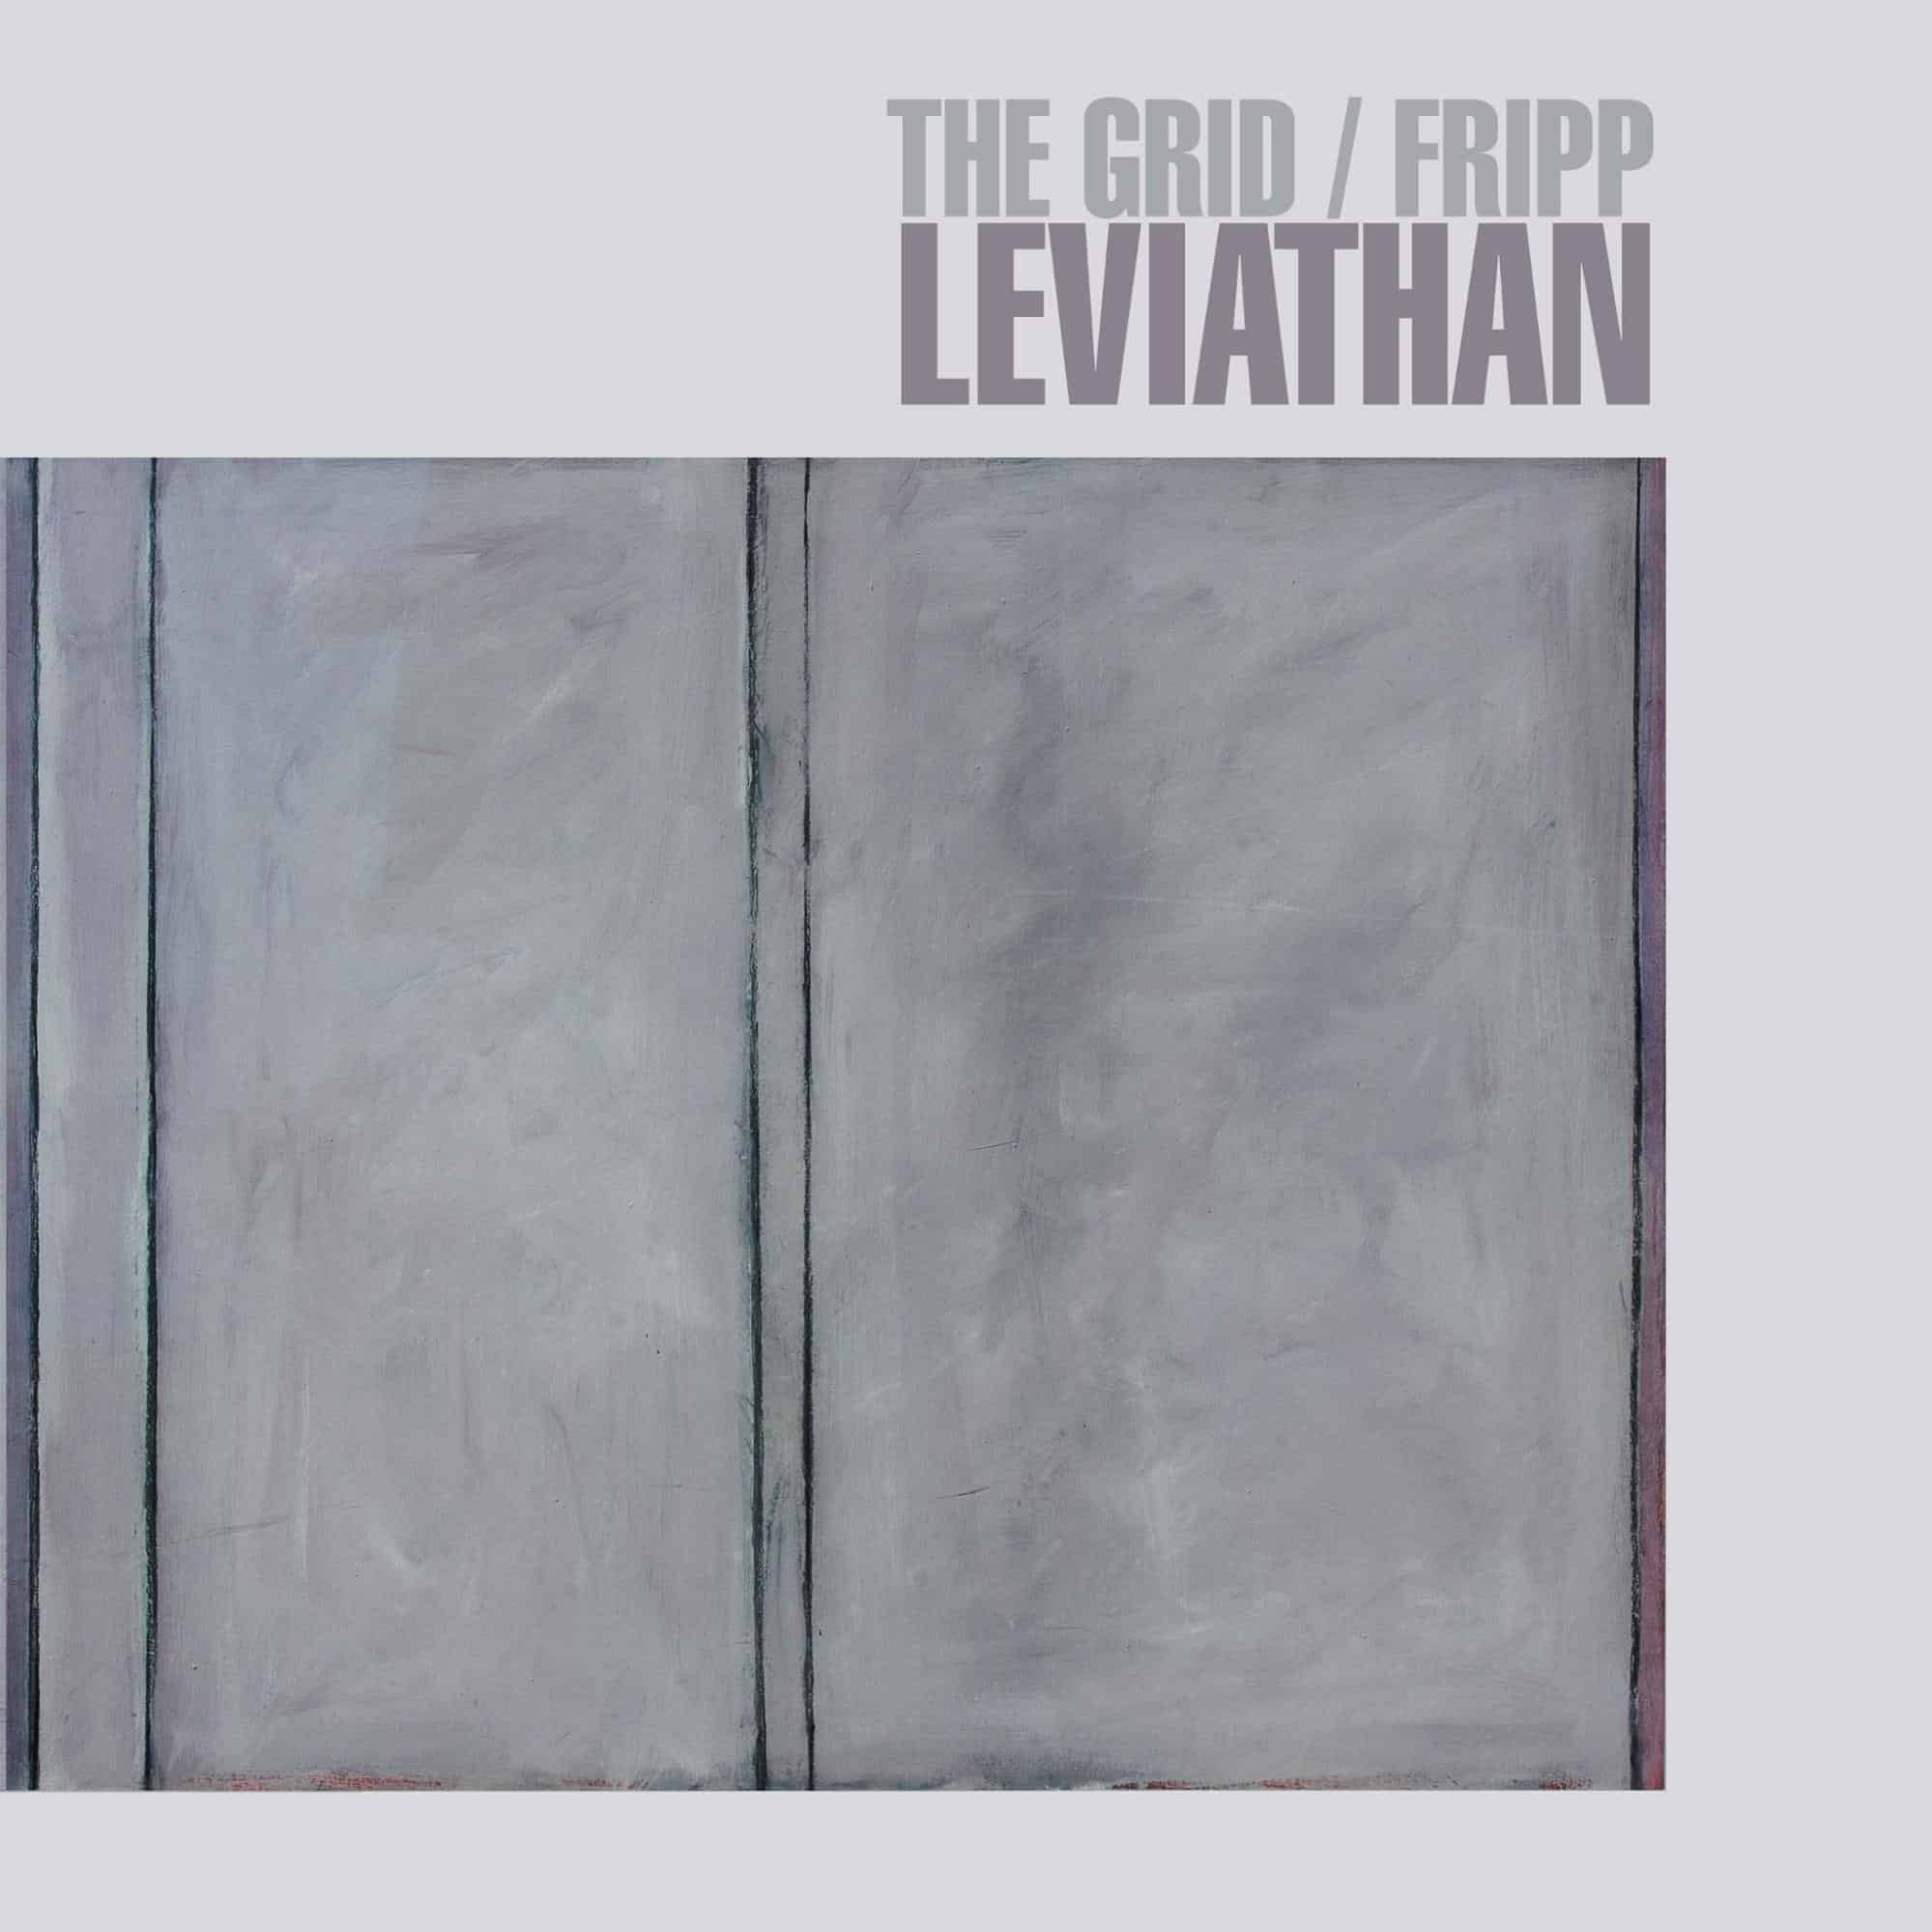 Leviathan by The Grid & Robert Fripp (2)